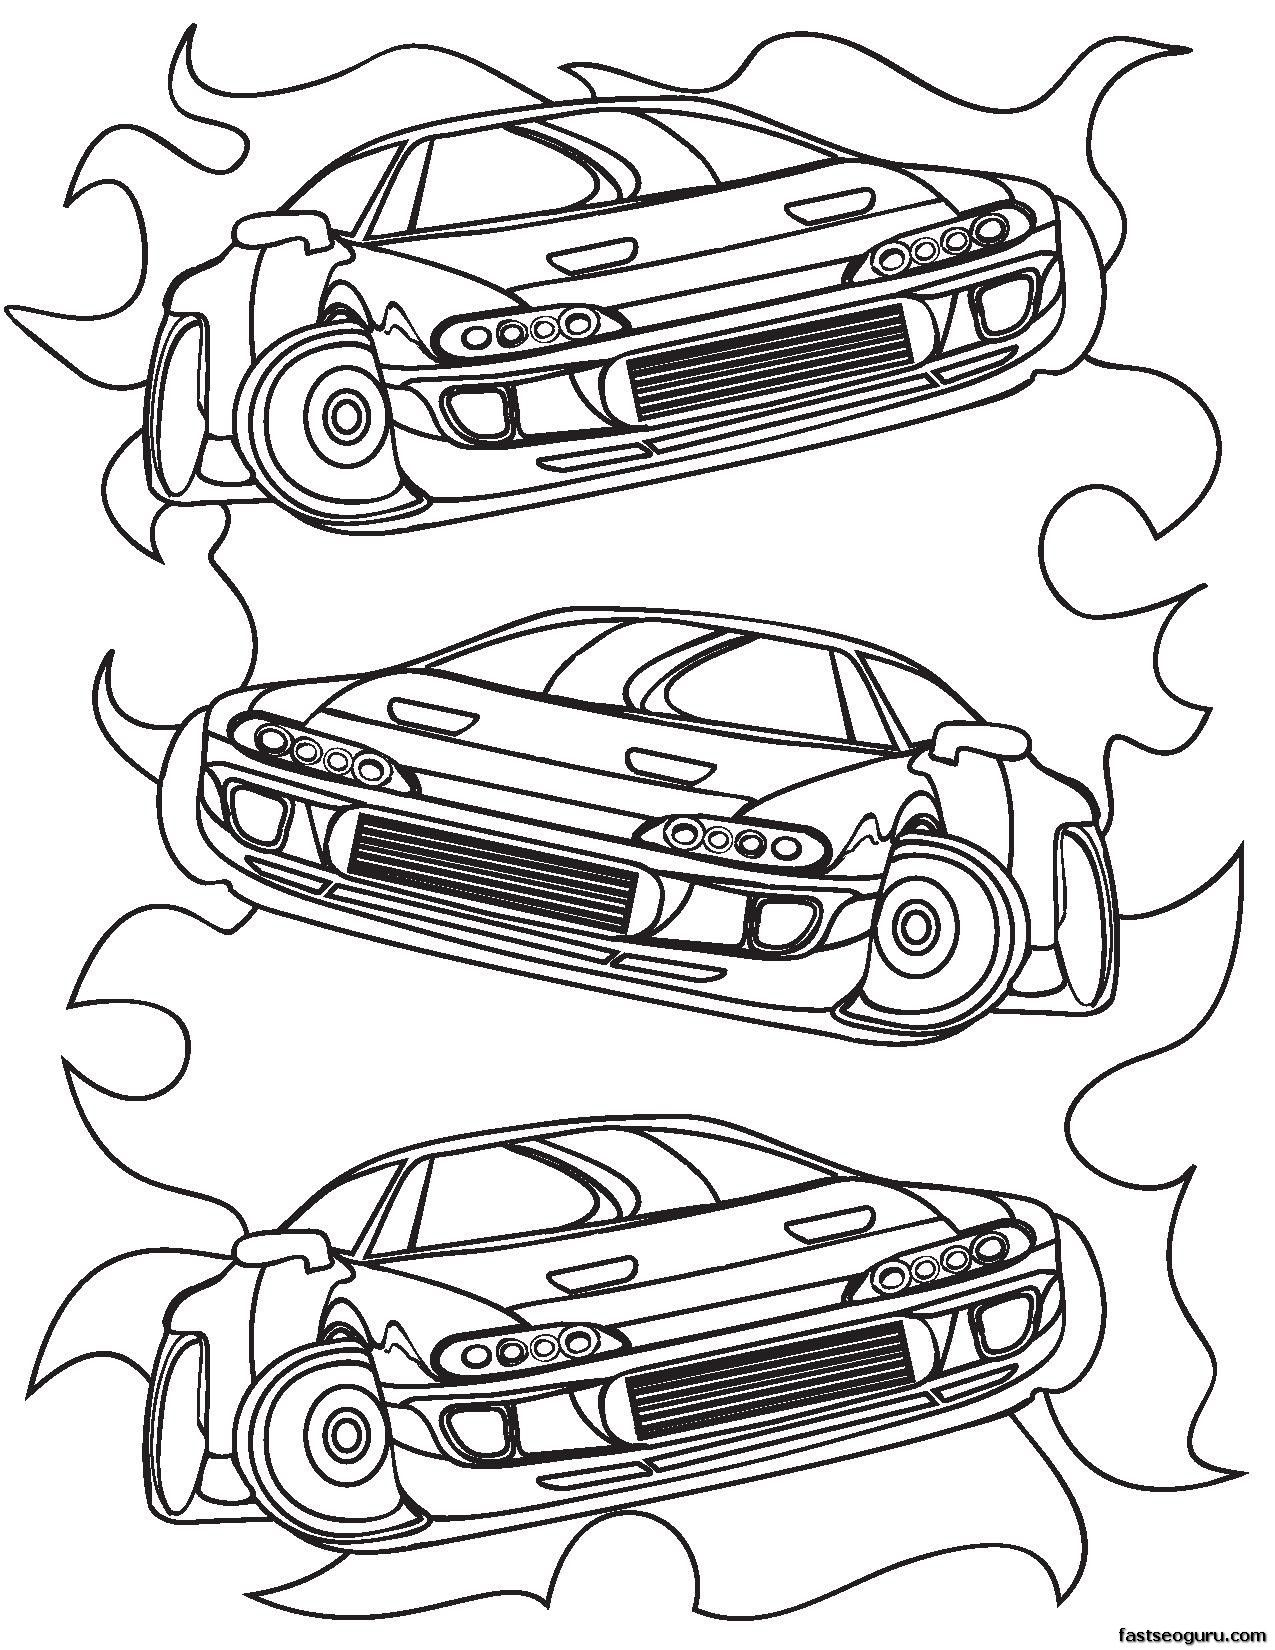 coloring pages for boys printable - coloring pages for boys cars printable coloring home